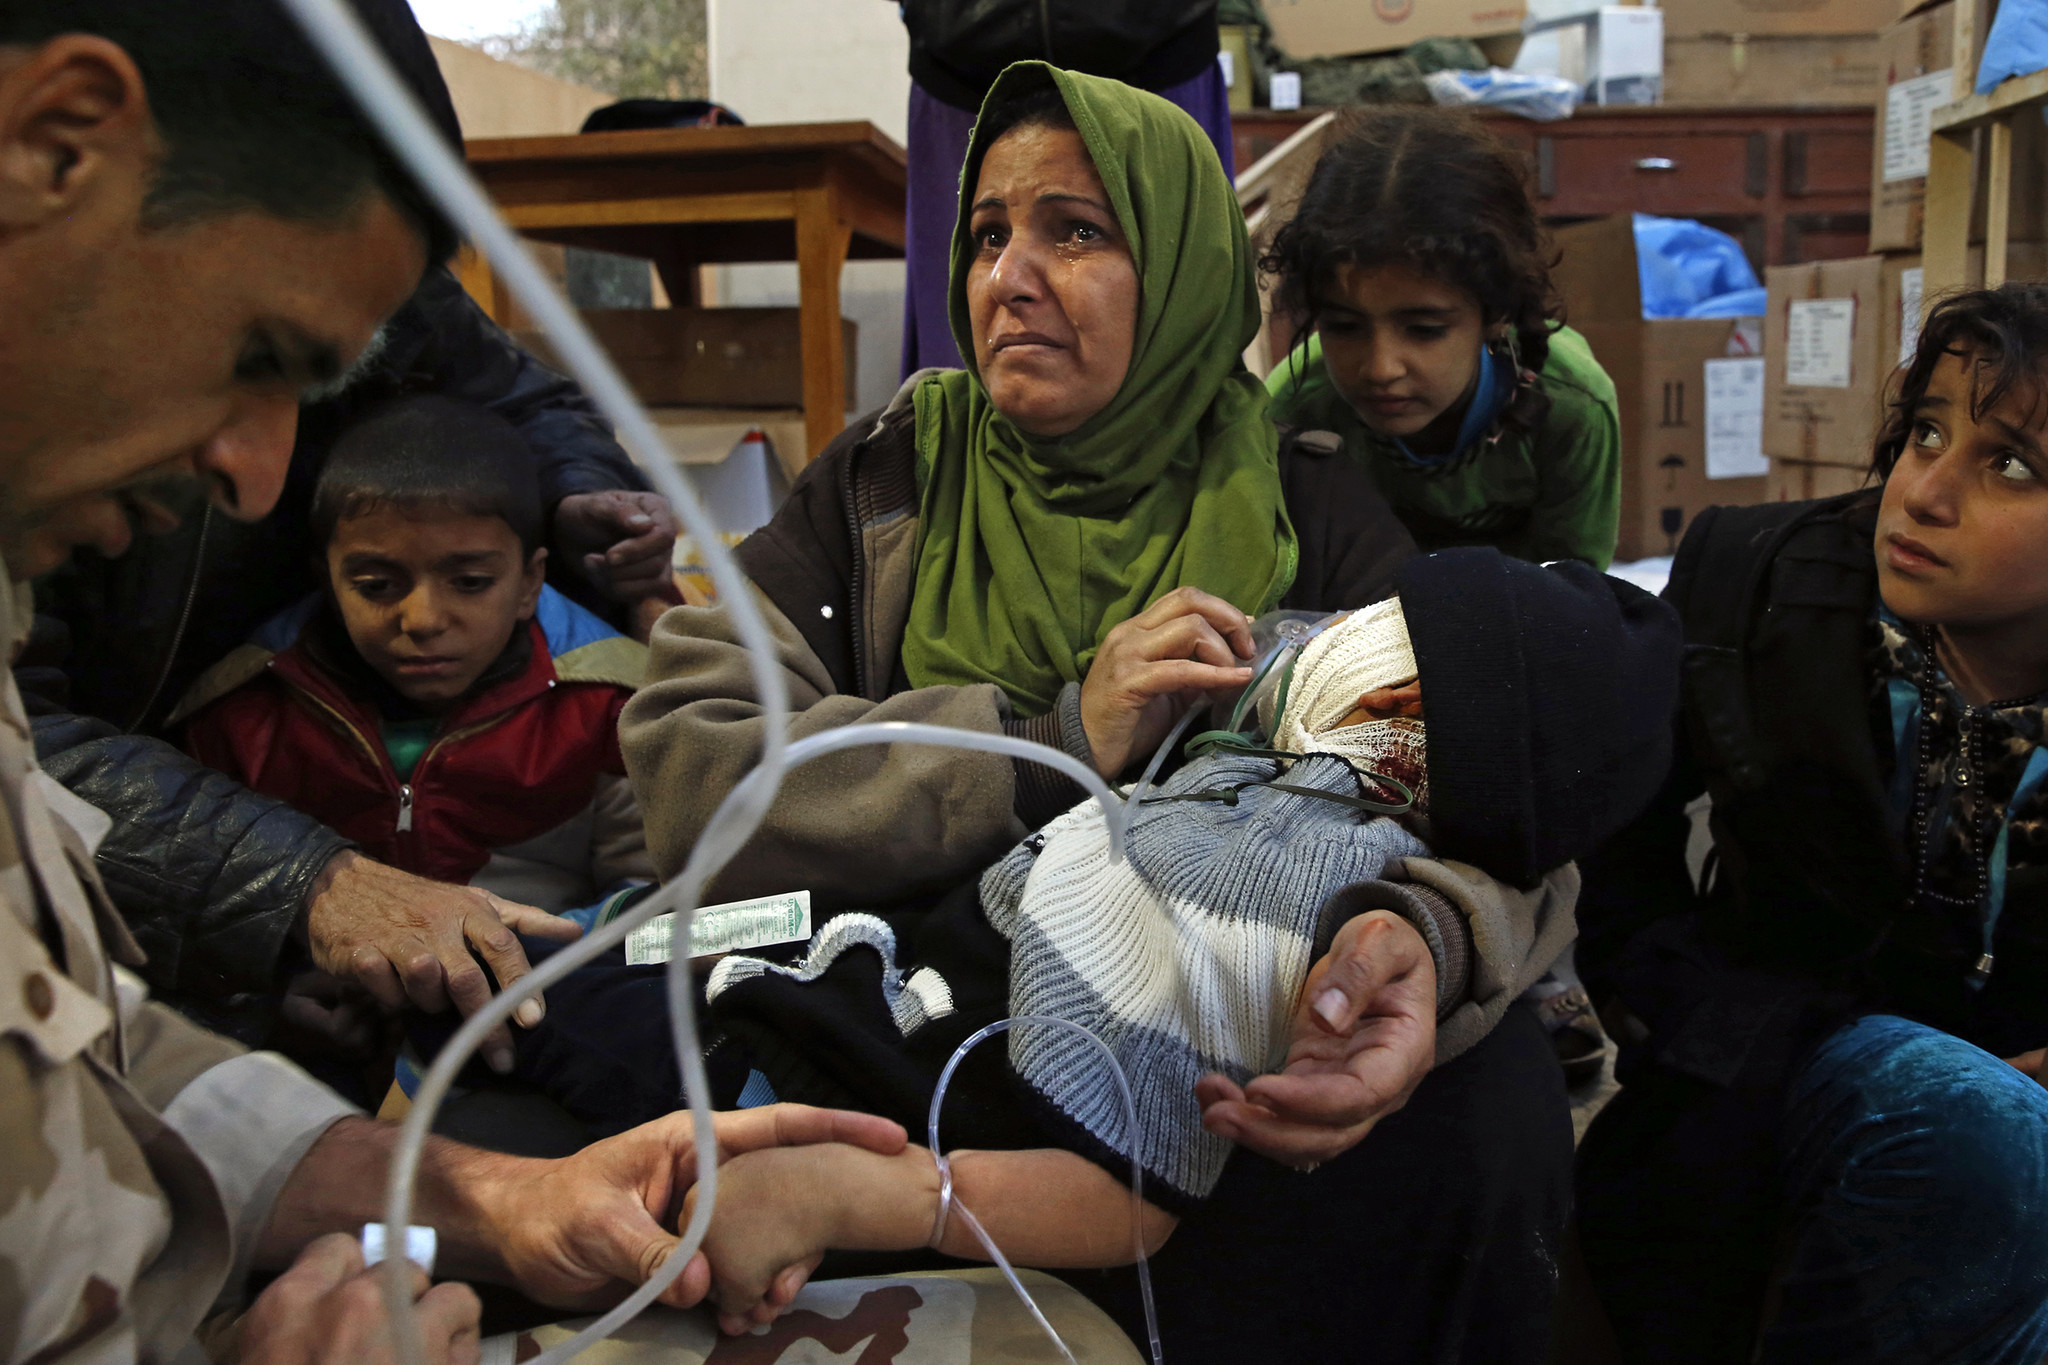 Wafa Abdel Raza, 39, holds her son Mahmoud Setar, 4, as the doctors give him oxygen and and fluids. The boy's head was badly injured when a truck bomb exploded near their home.